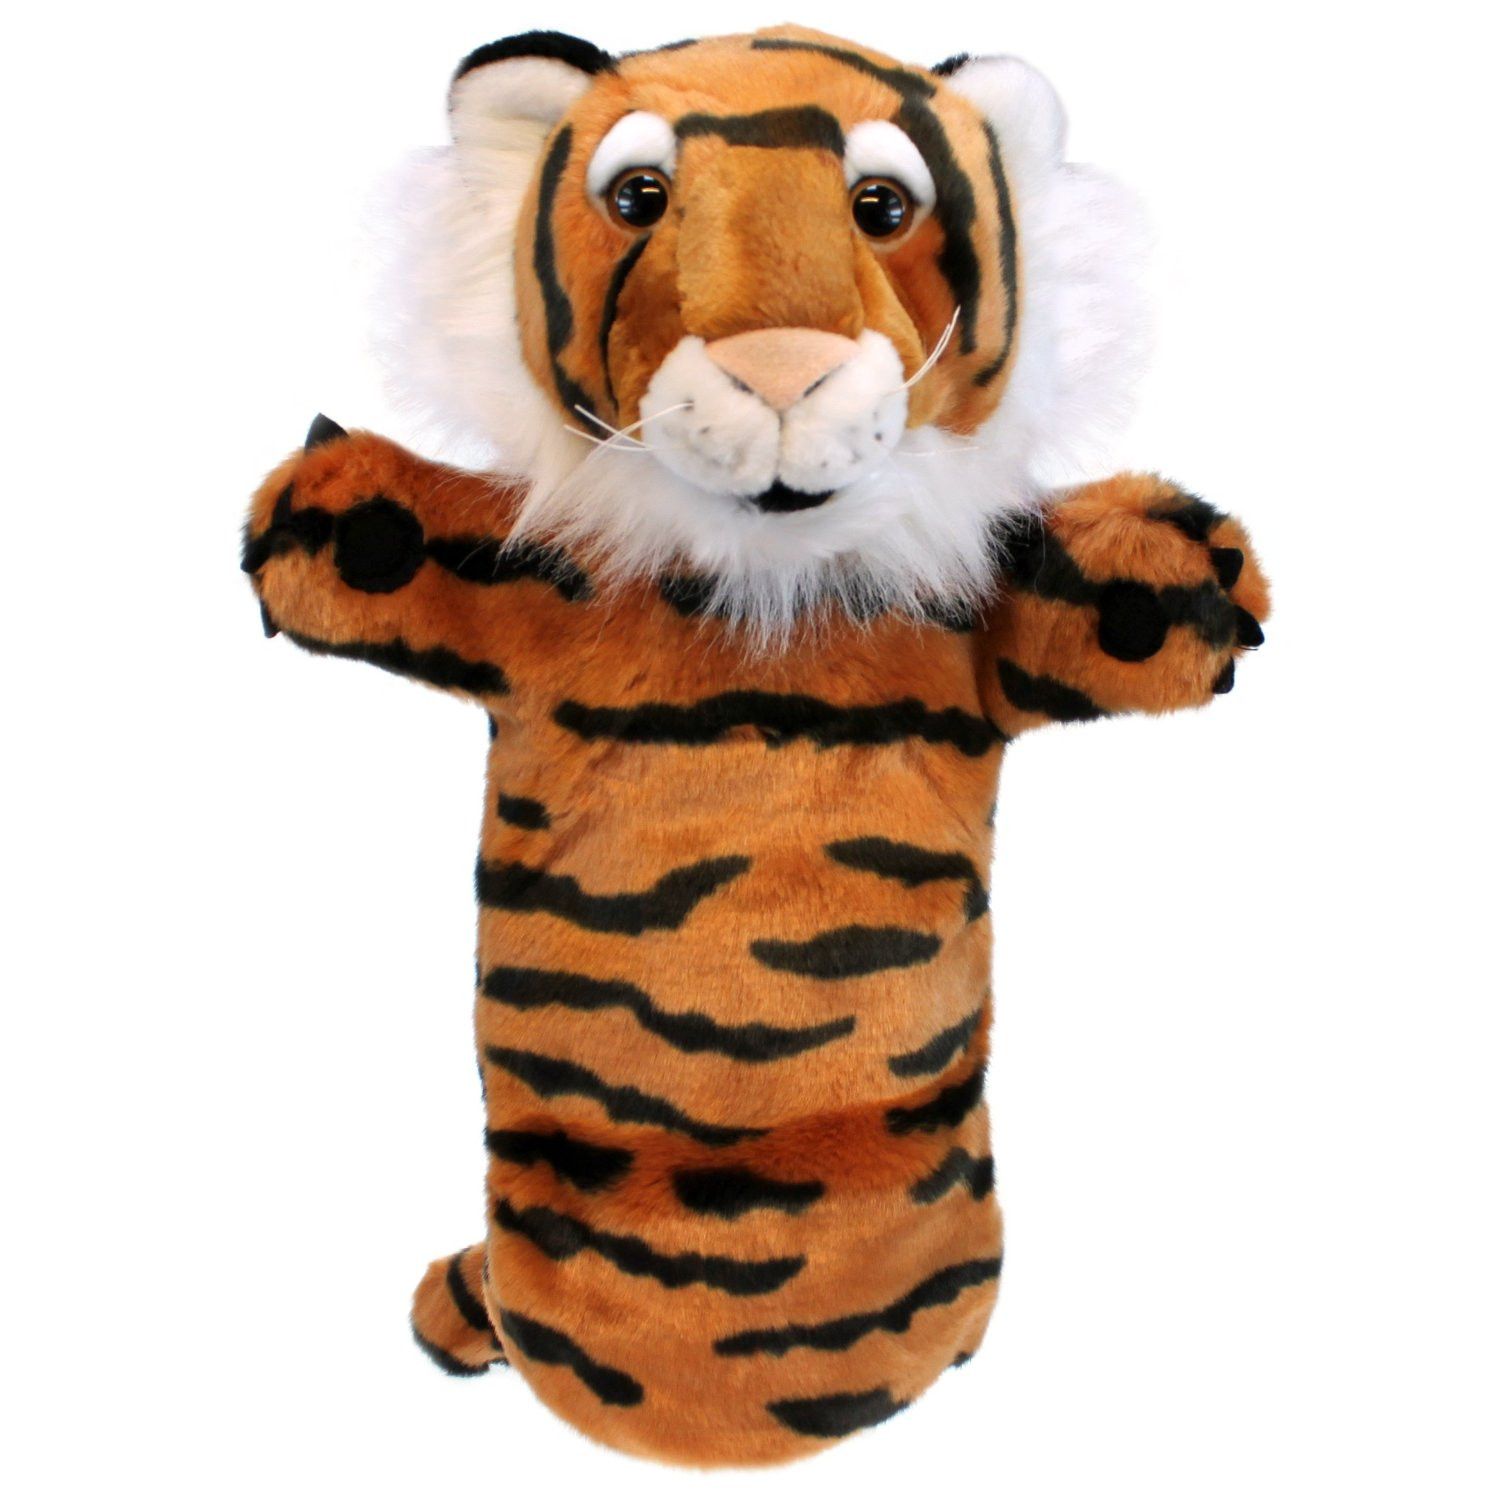 The Puppet Company Tiger Long Sleeved Glove Puppet